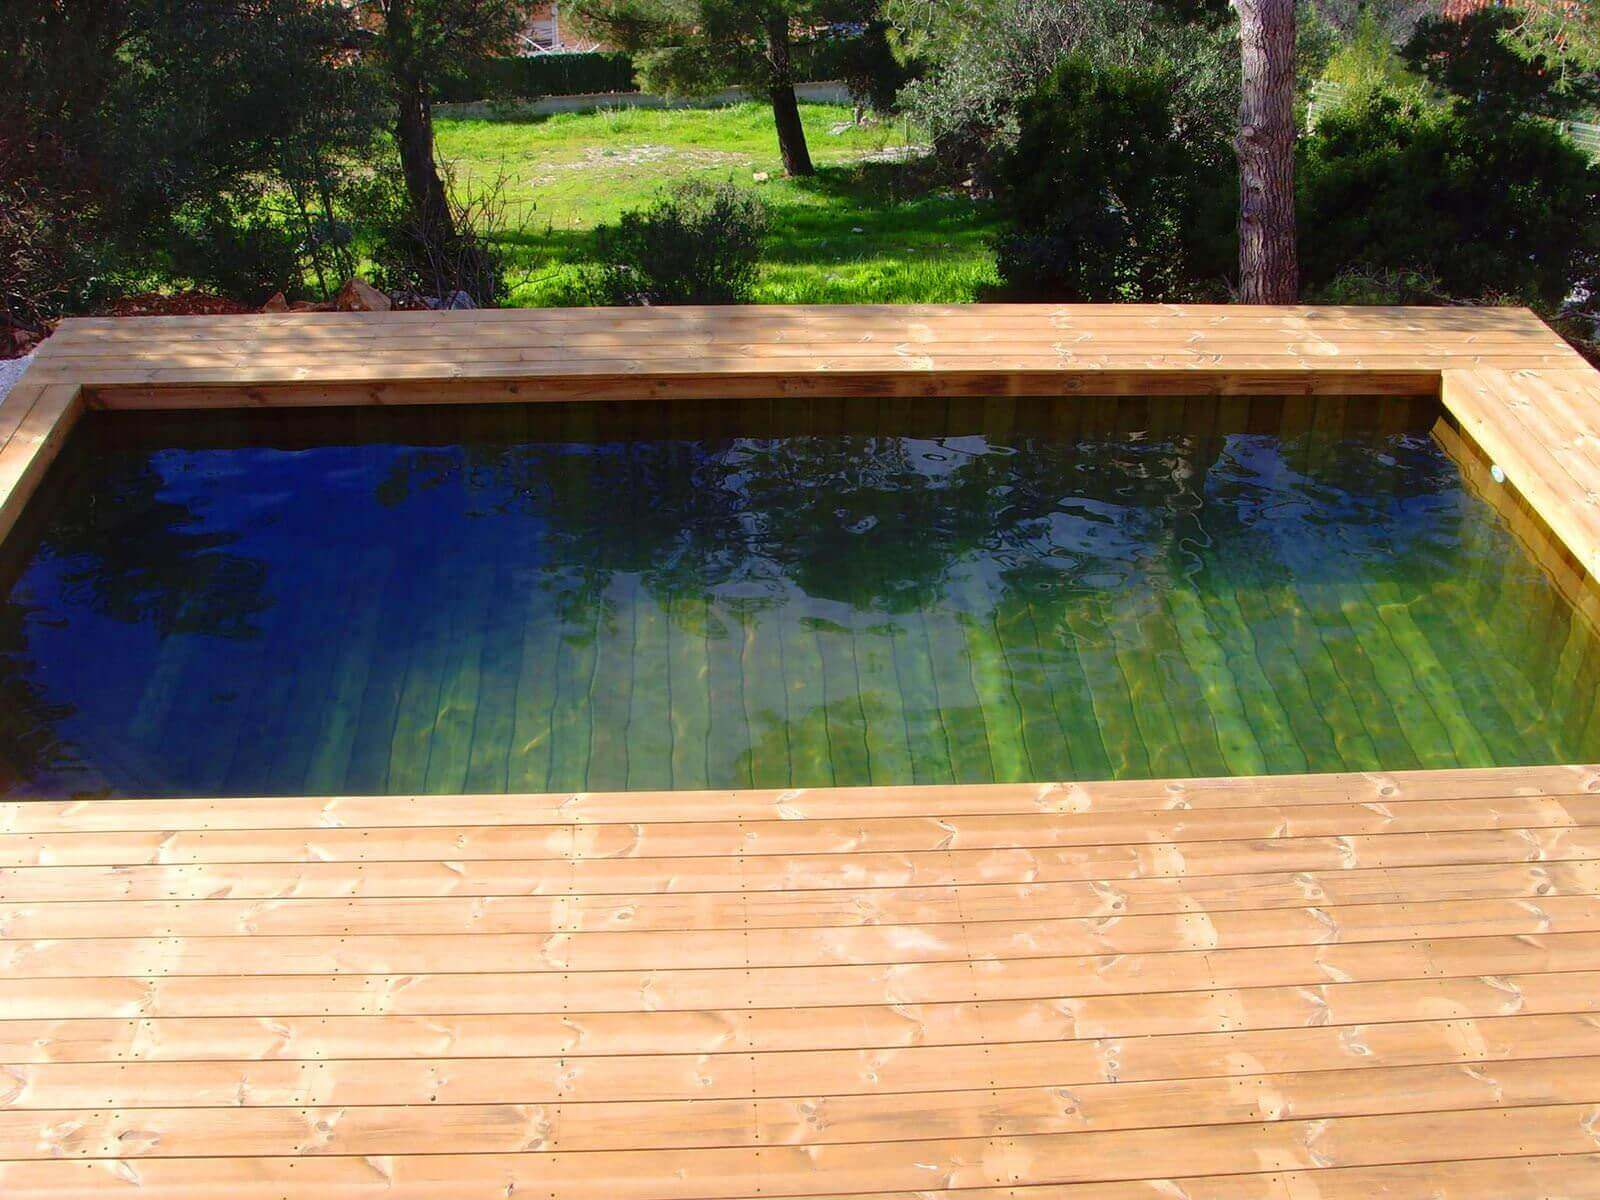 Photos de piscines en bois hors sol sur mesure sans liner for Liner de piscine sur mesure